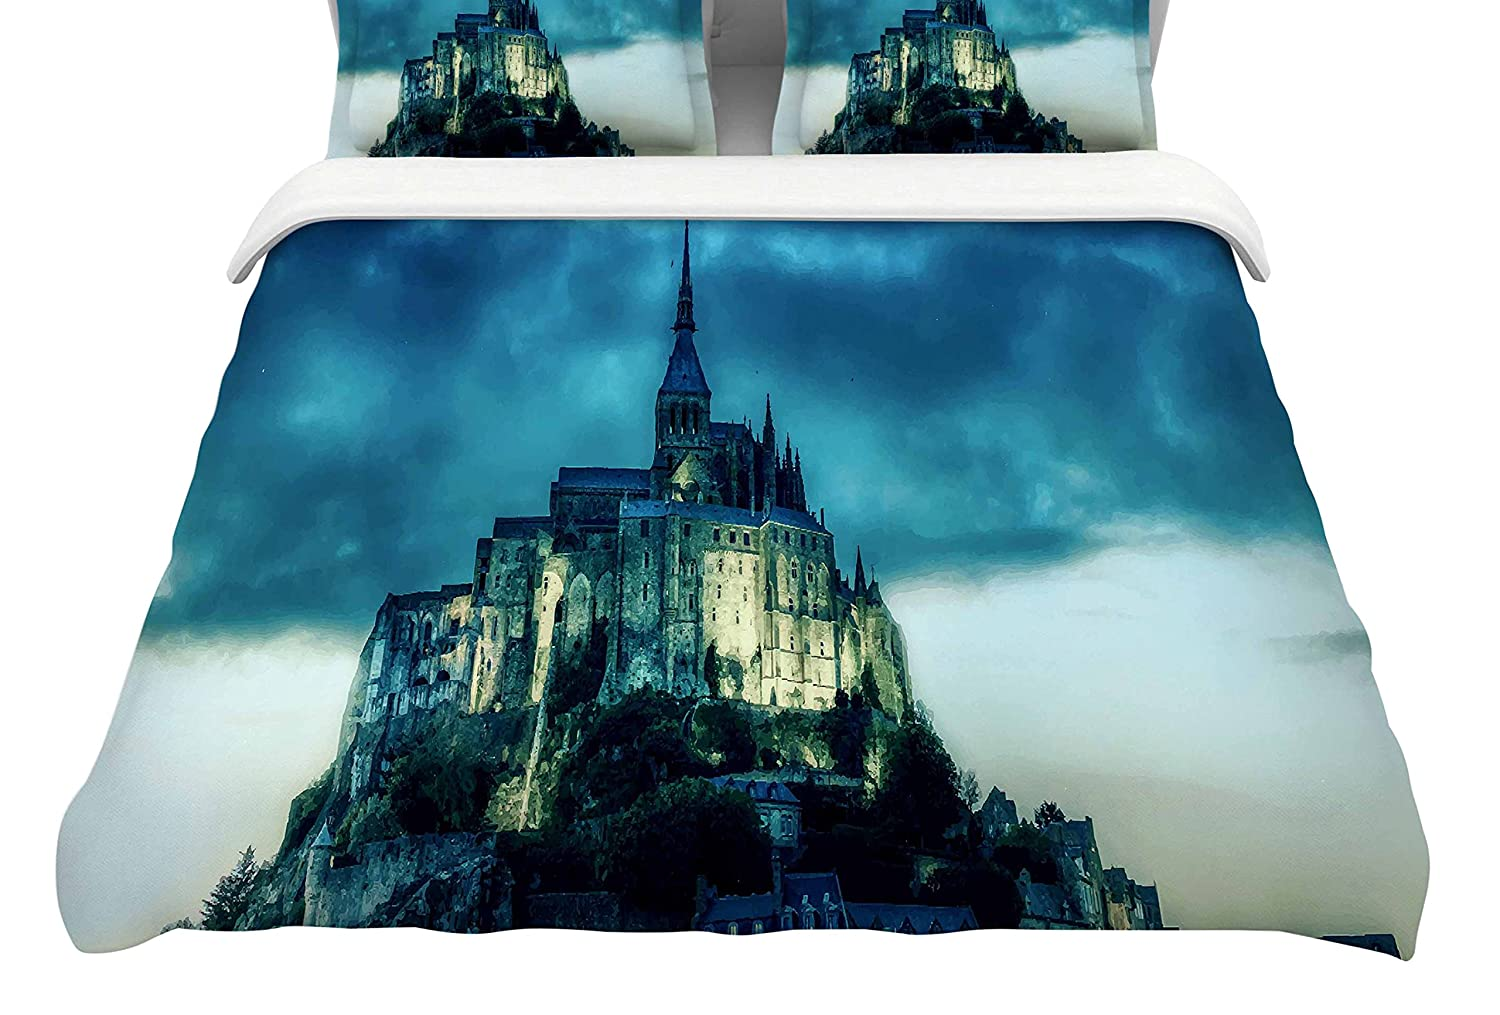 Kess InHouse Vyara Likova Haunted Castle Featherweight Queen Duvet Cover 88 x 88,